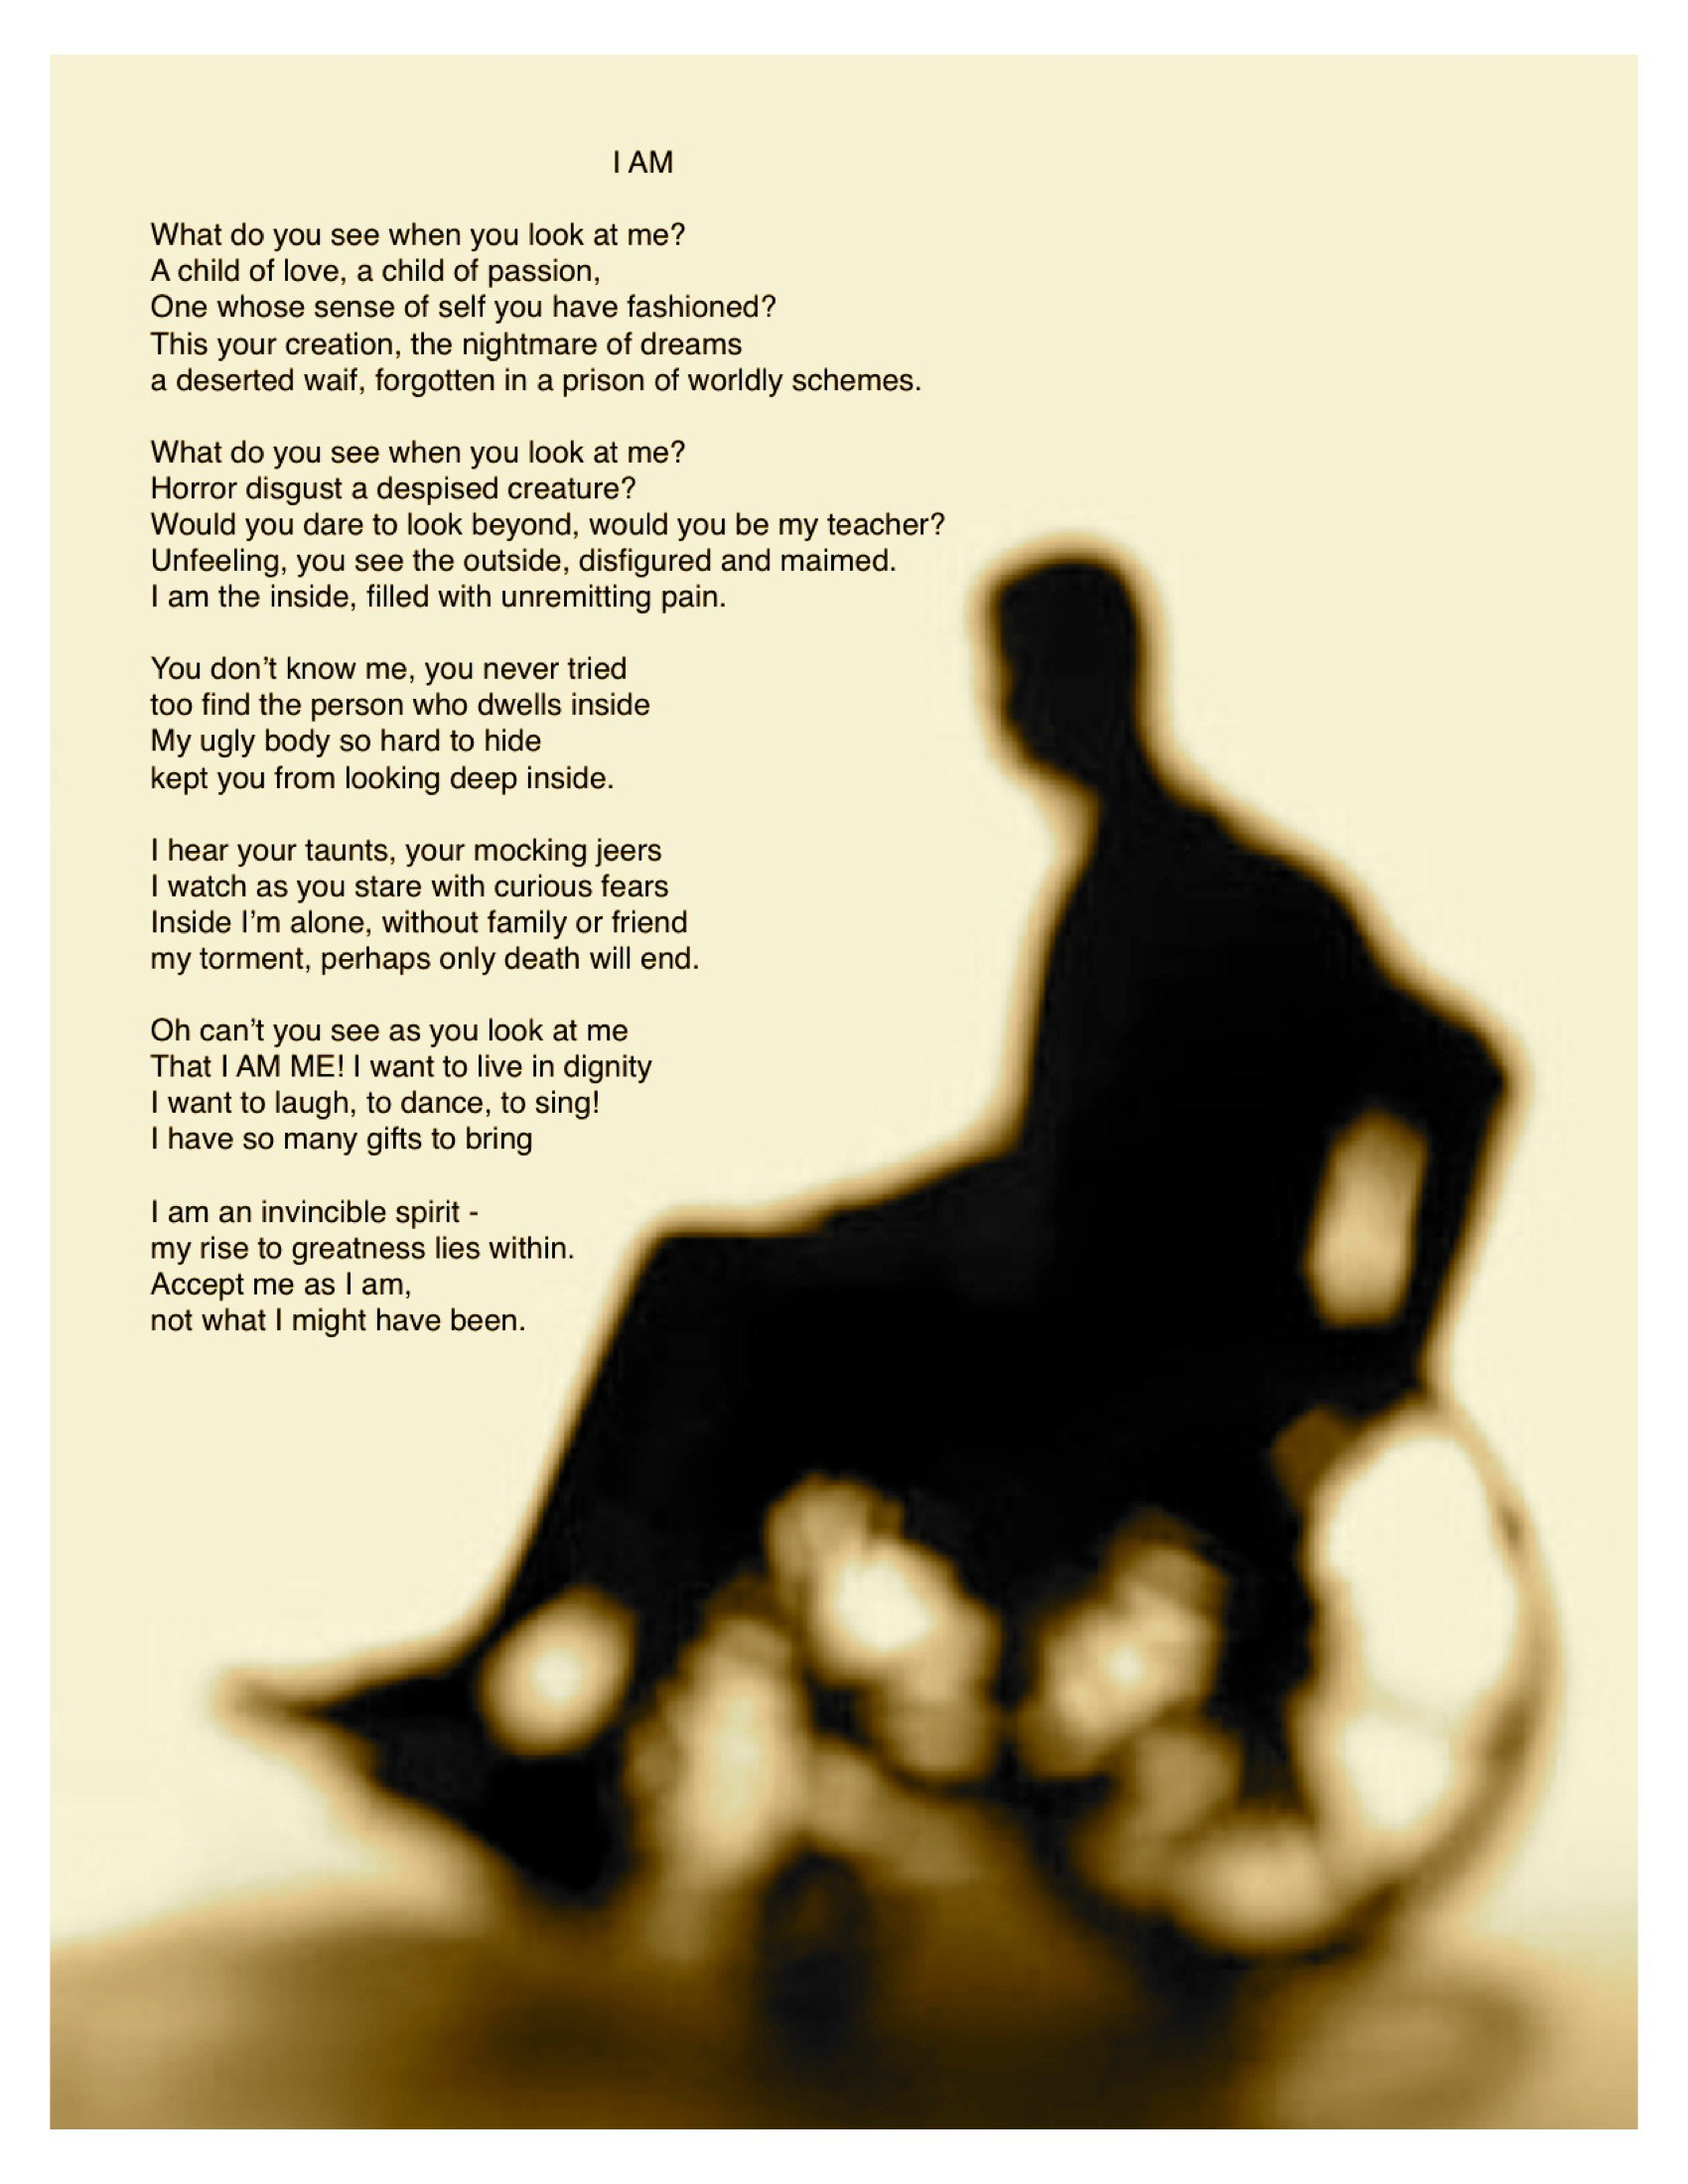 Marty Gregoire's Disability Poem Shatters Perceptions.